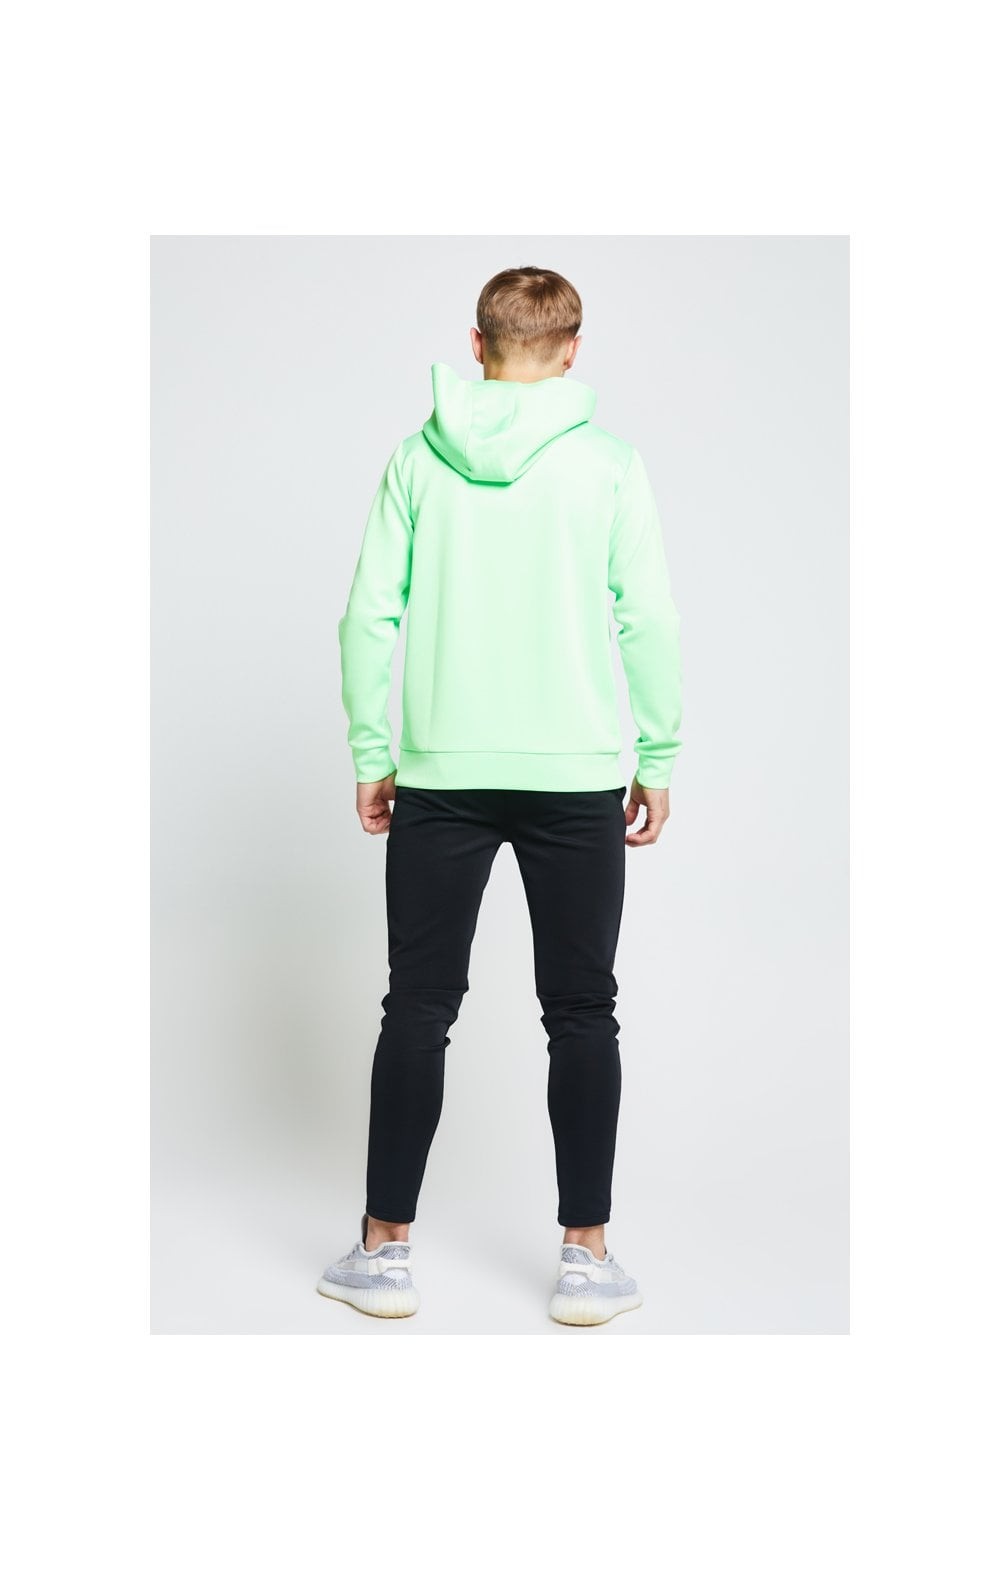 Load image into Gallery viewer, Illusive London Taped Overhead Hoodie - Neon Green (5)